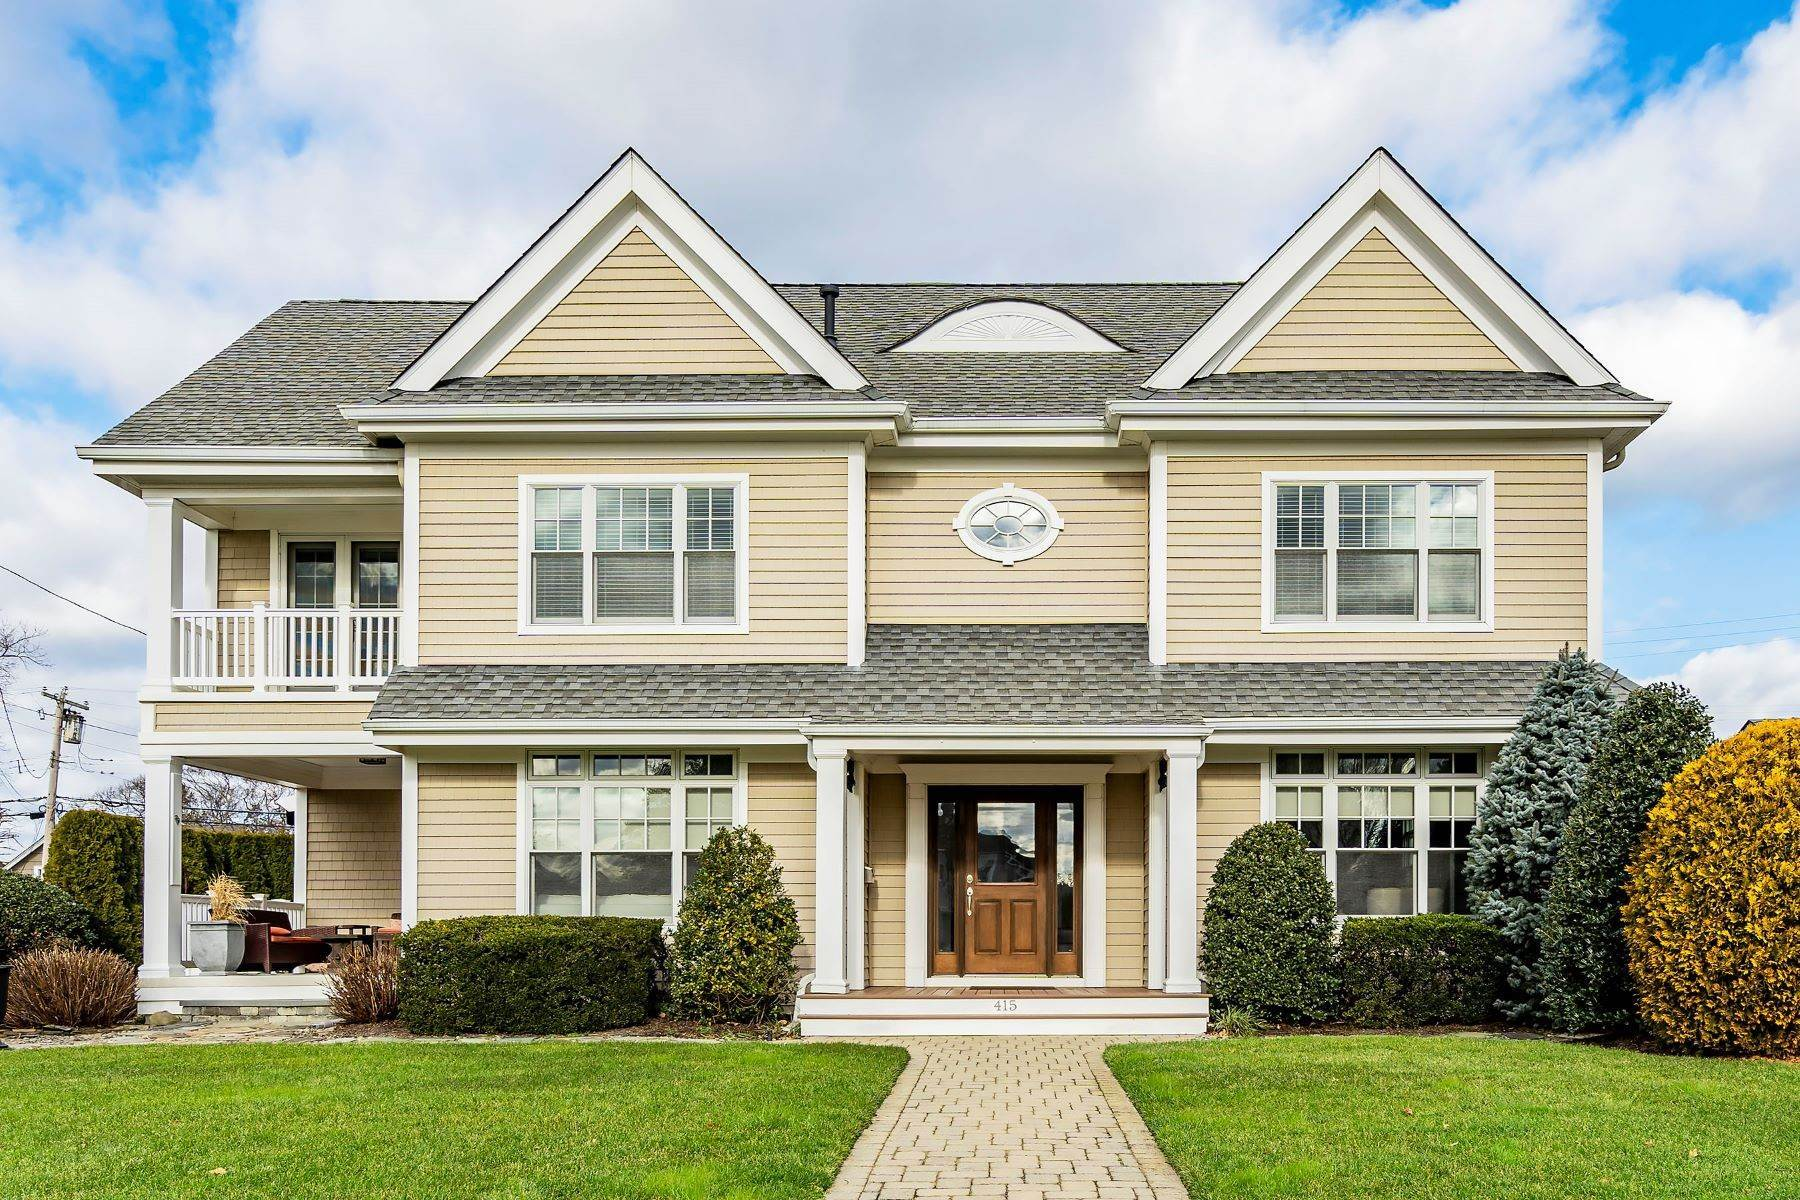 Single Family Homes for Sale at Peaceful, Private and Perfect 415 Chicago Boulevard Sea Girt, New Jersey 08750 United States